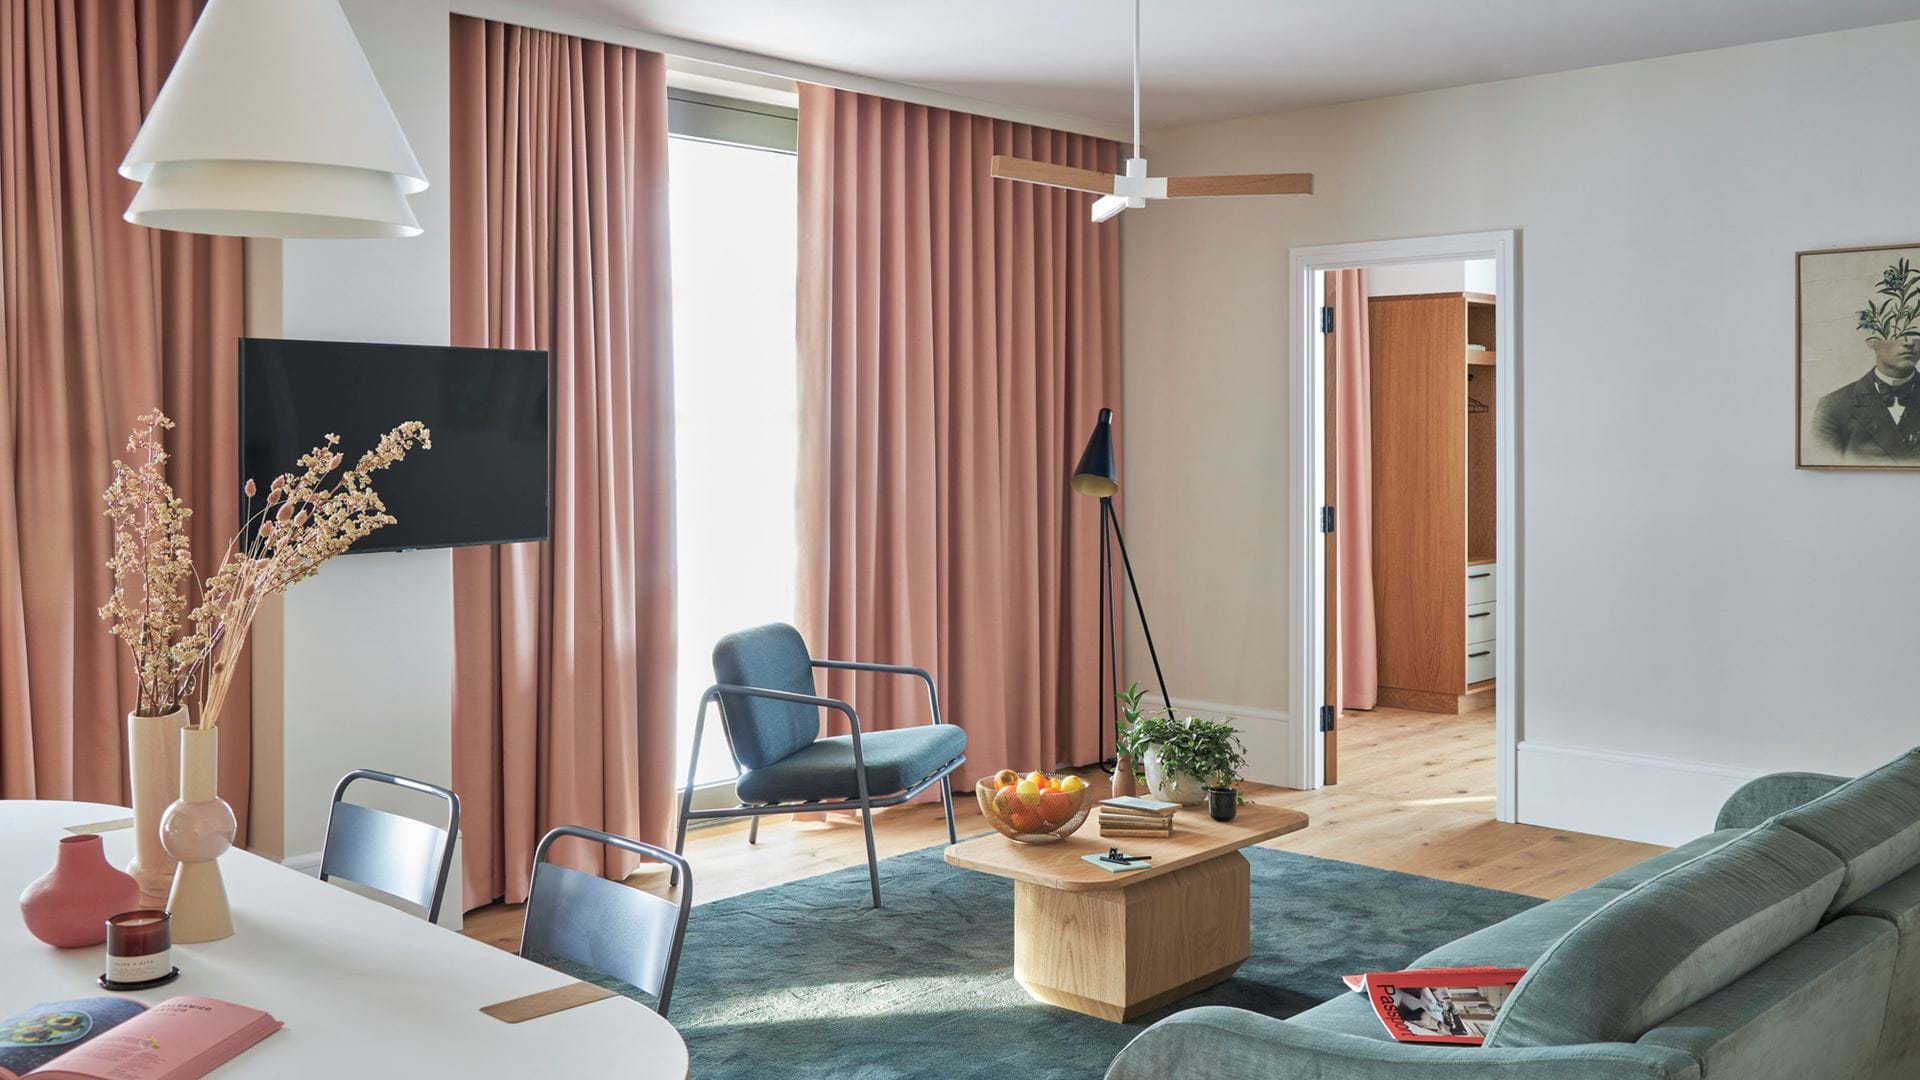 Two Bedroom Apartment: Turing Locke, Eddington | Cambridge | Design-led Aparthotels, Locke